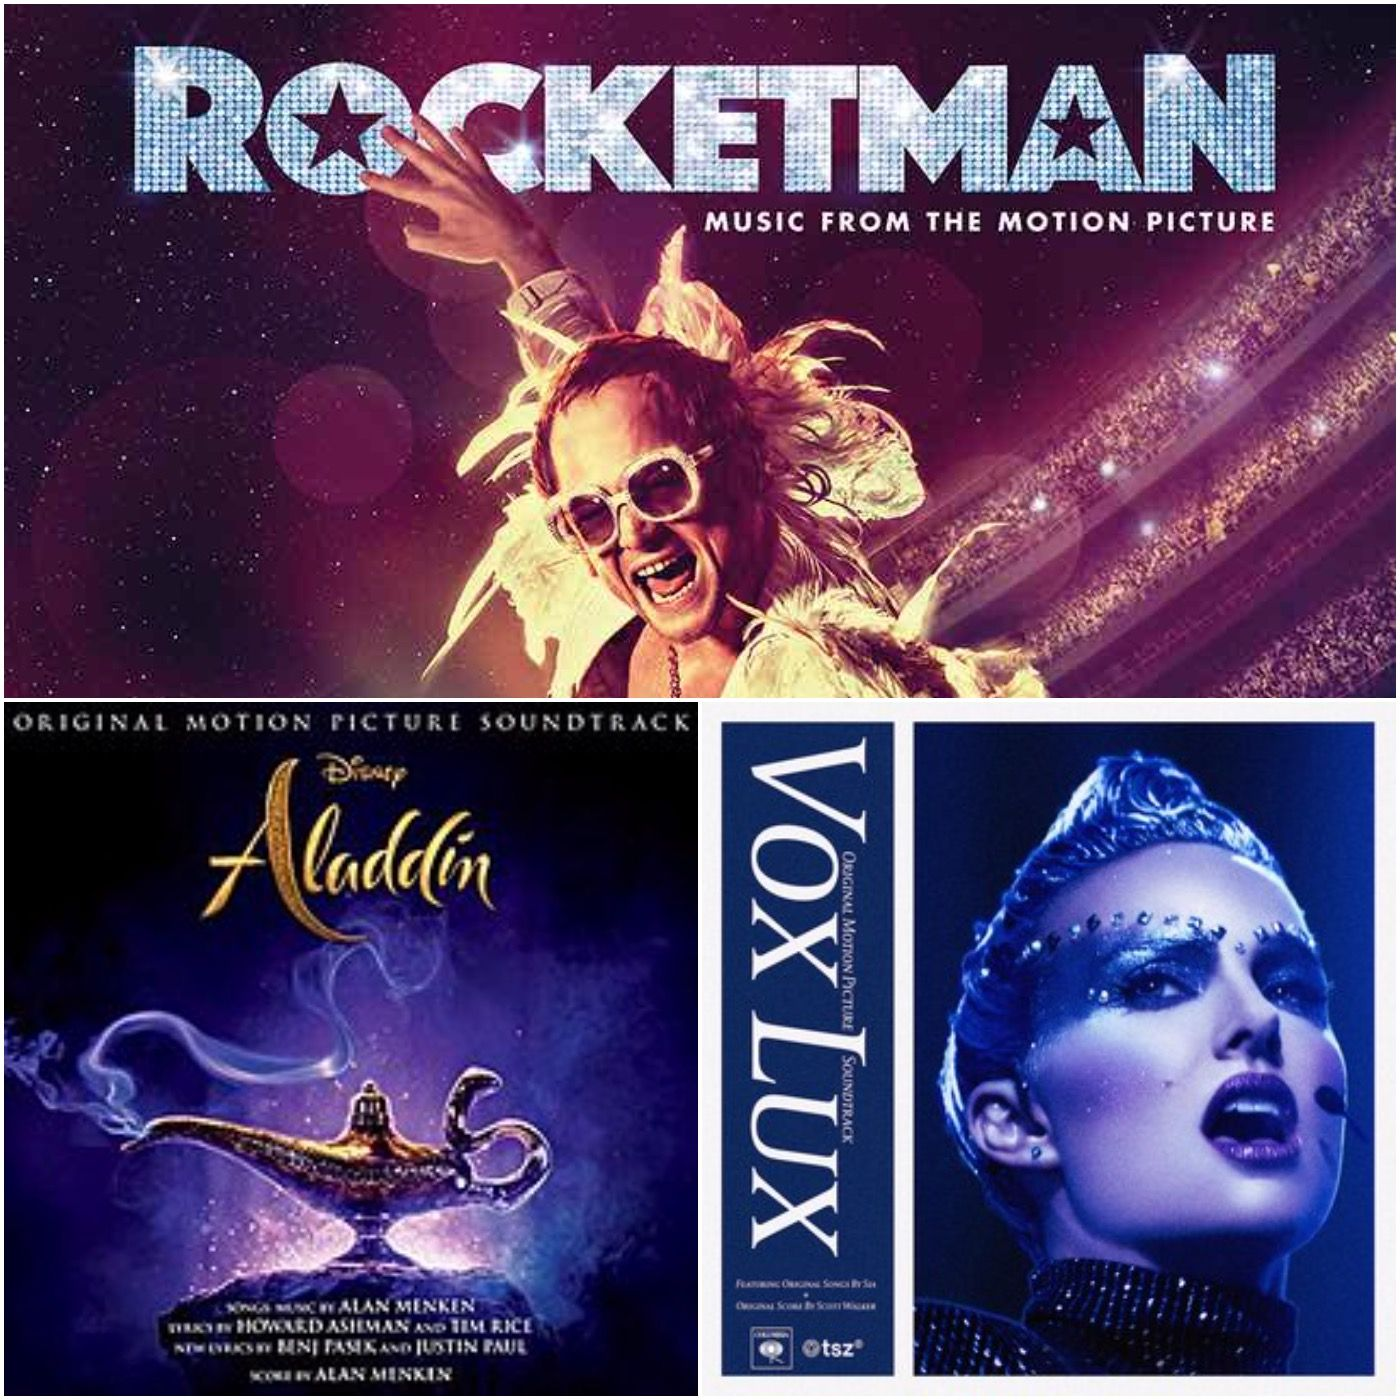 7. Aladdin / Vox Lux / Rocketman / Top 5 Scores with Songs